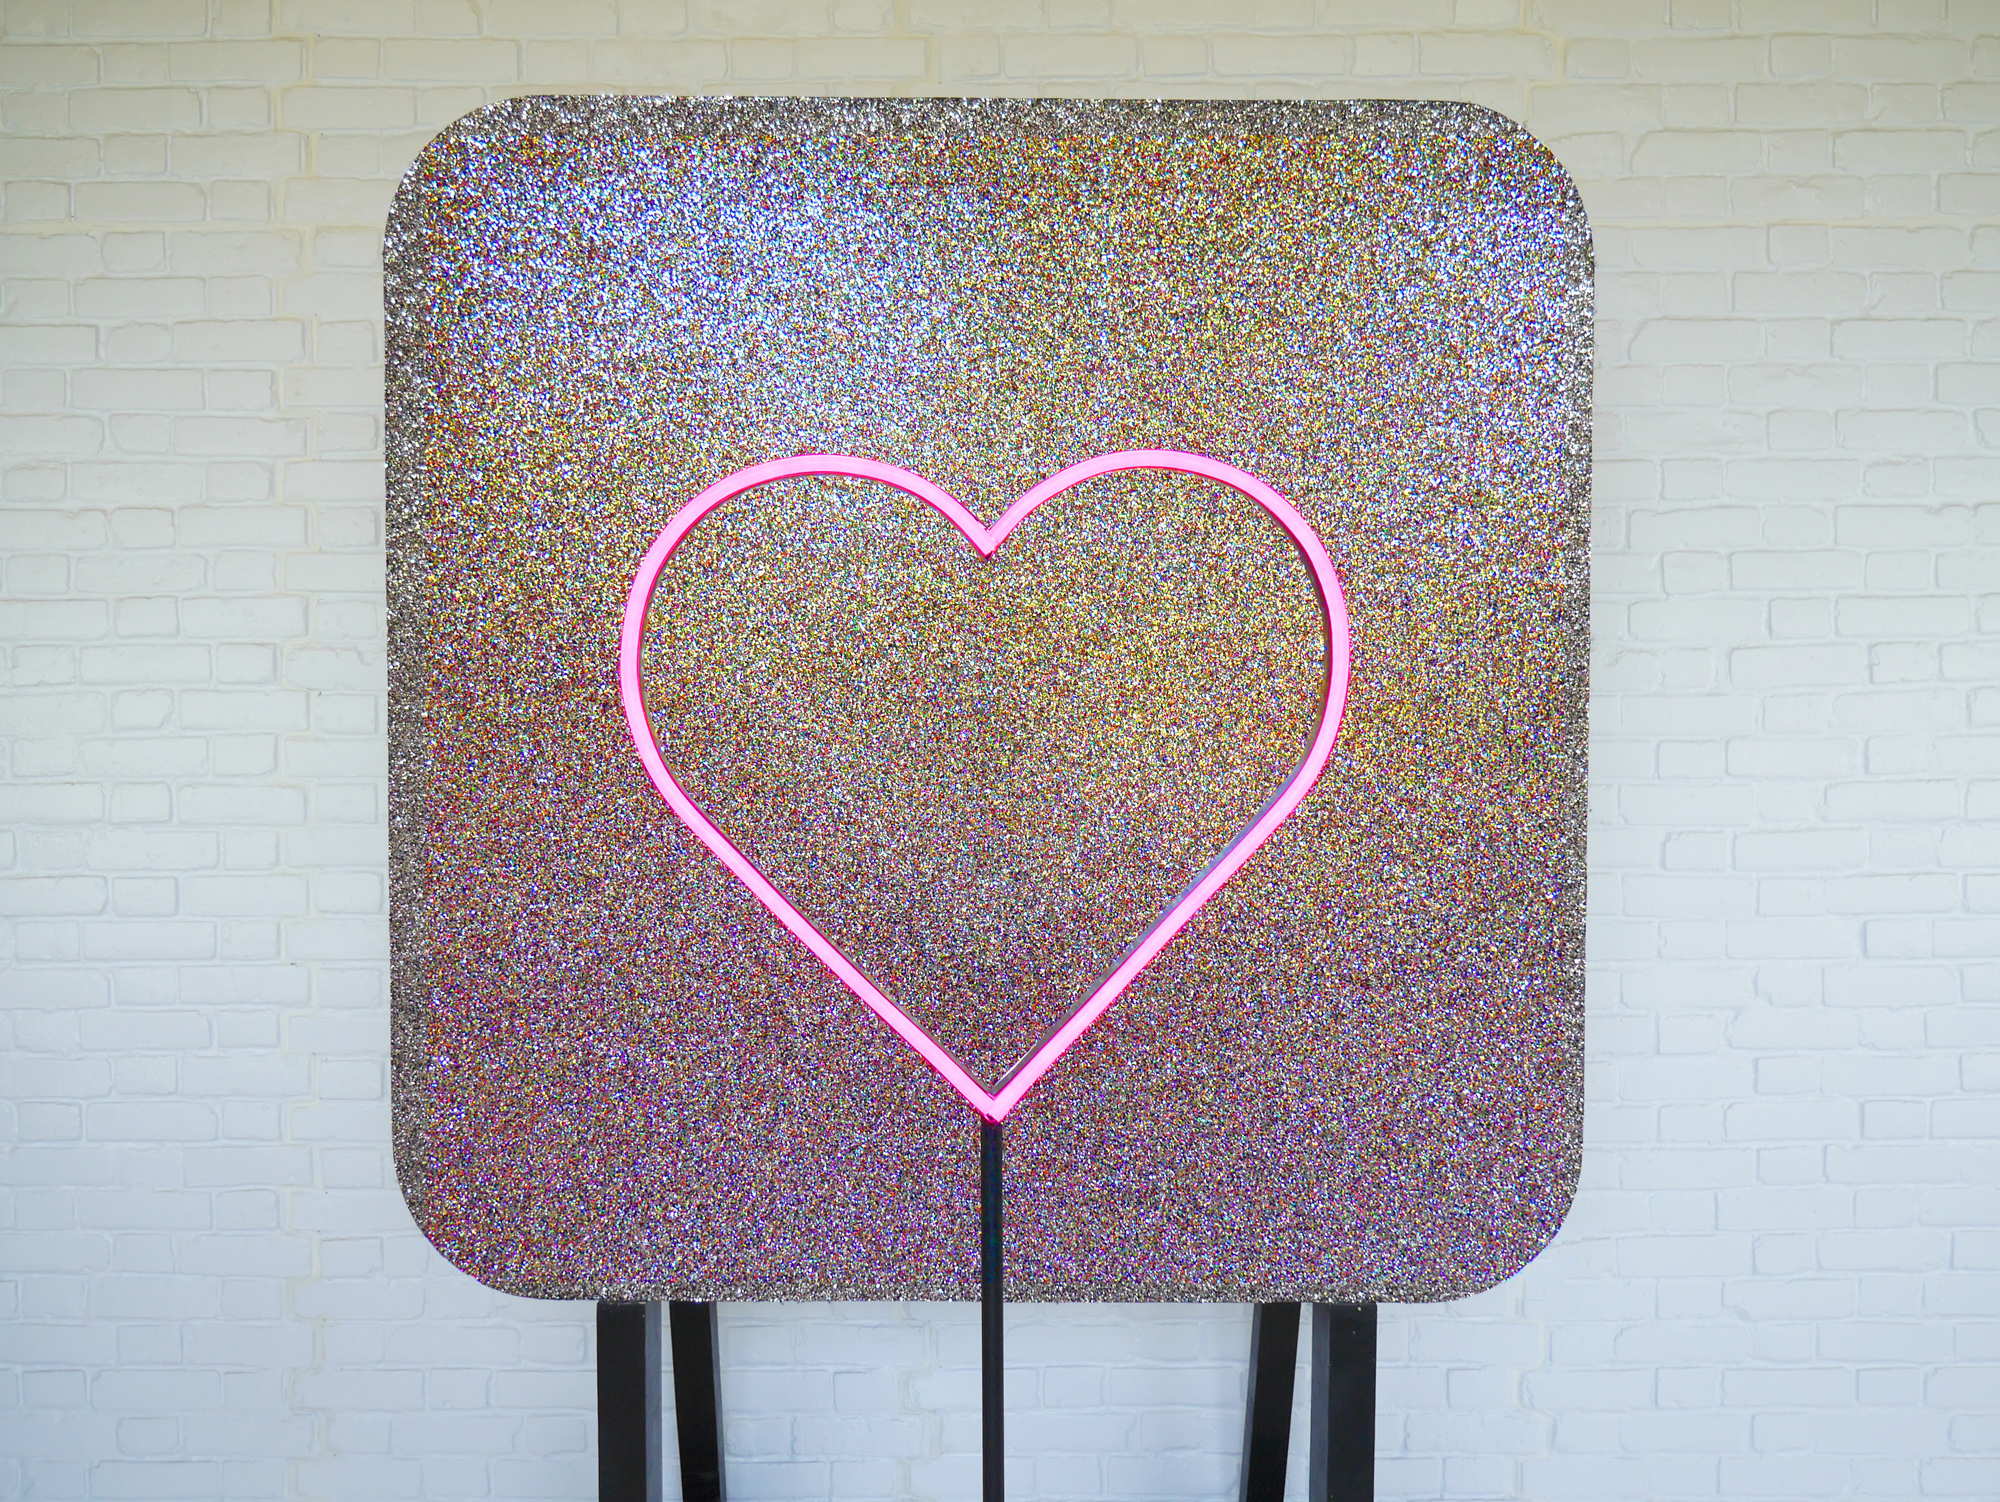 Neon Heart with Glitter Wall Vowed and Amazed.jpg